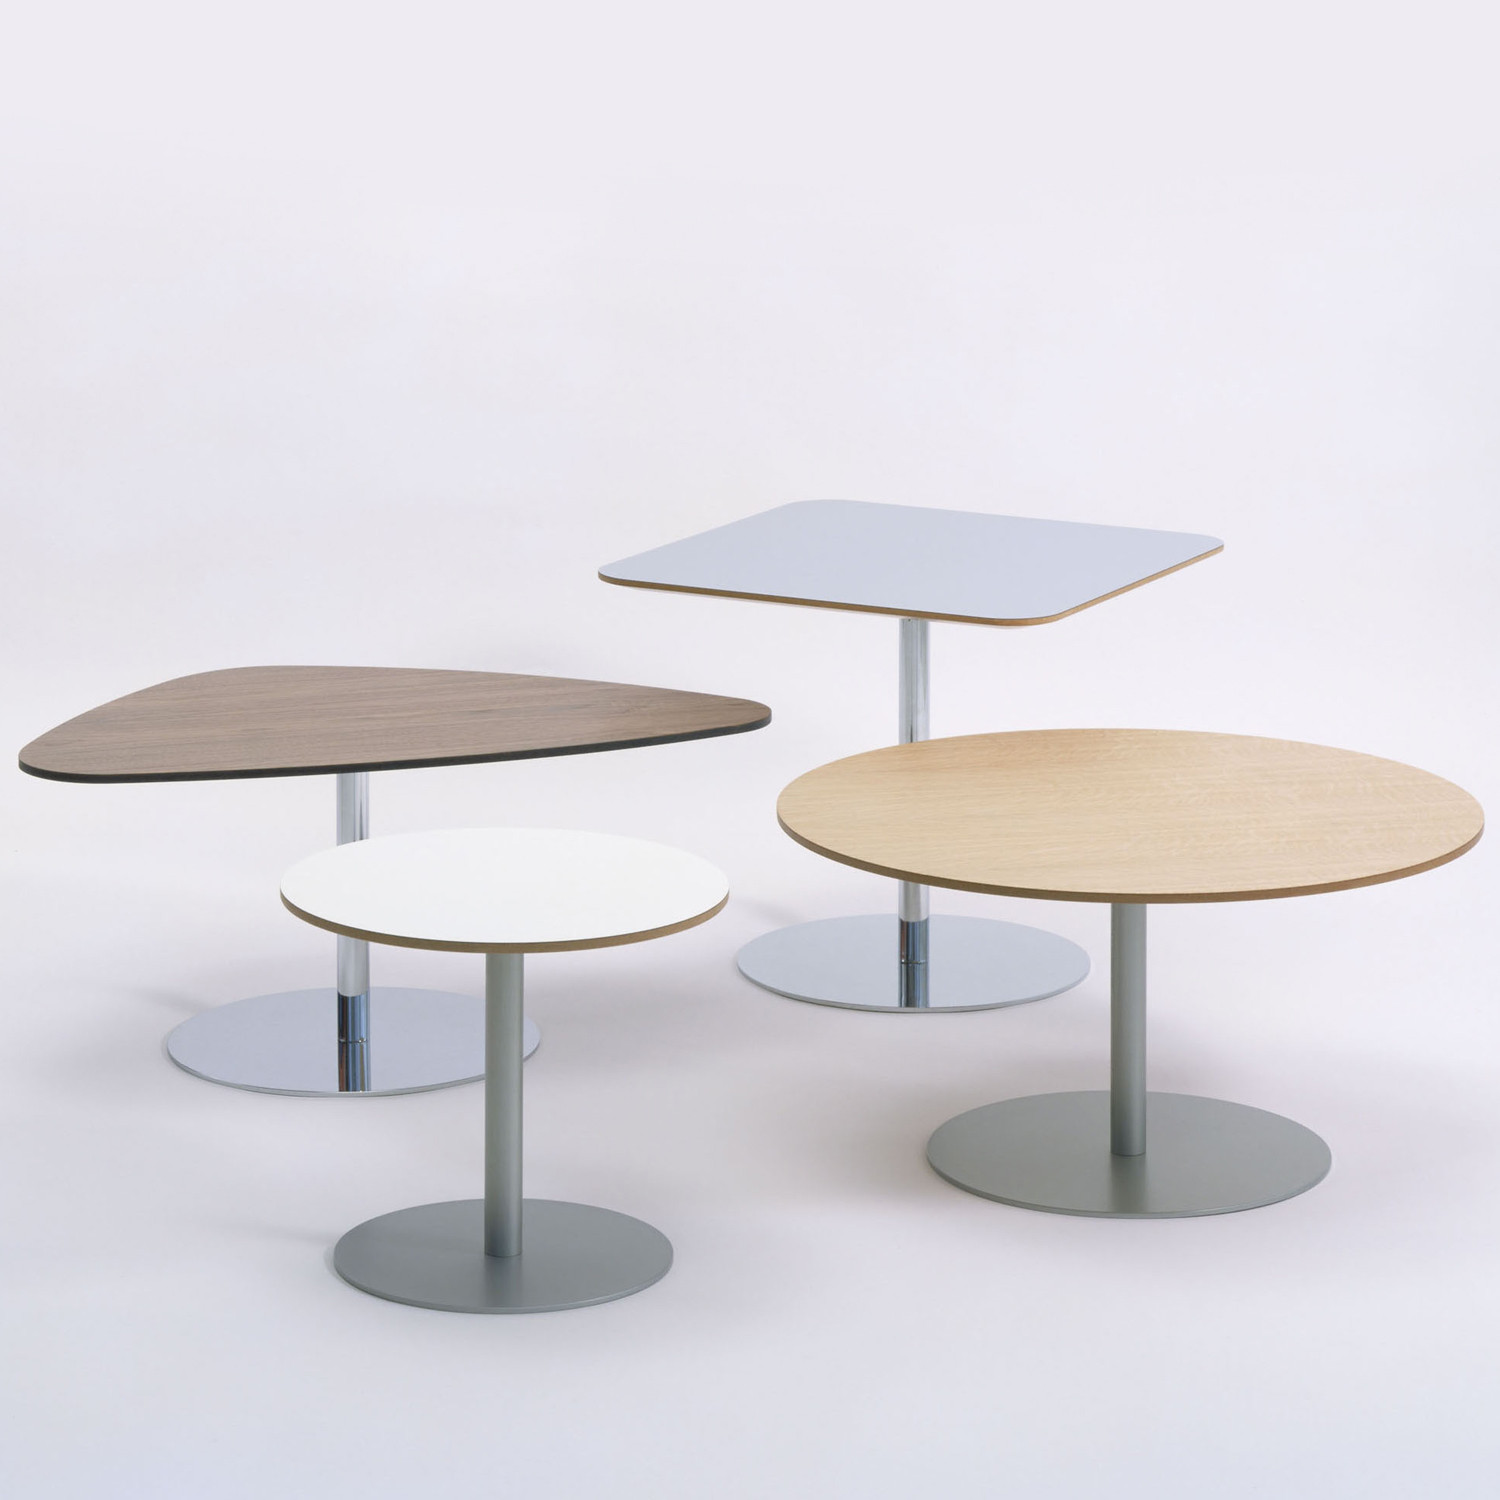 Hm20 Tables are available in six tabletop shapes